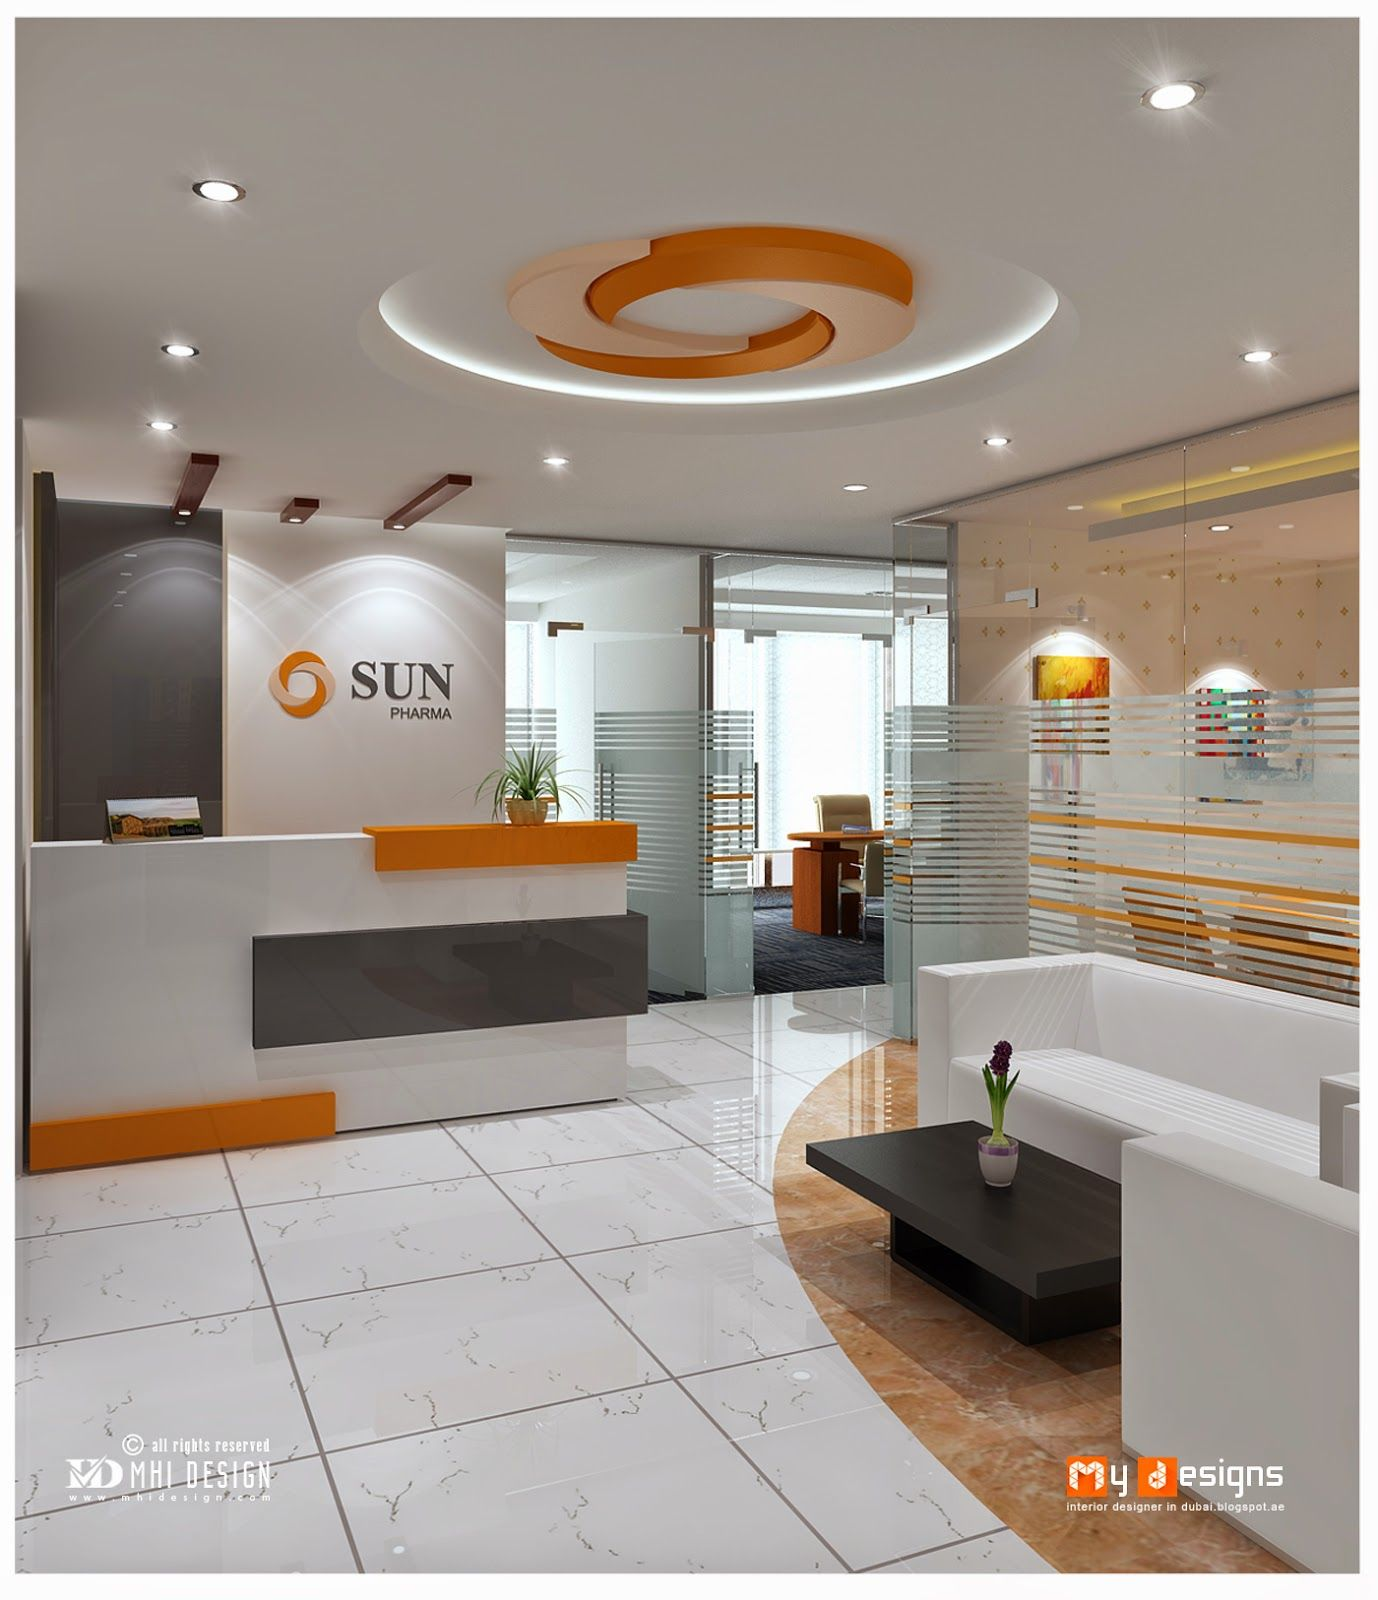 Reception design proposal for sun pharma one of mhi design for Office design 3d max